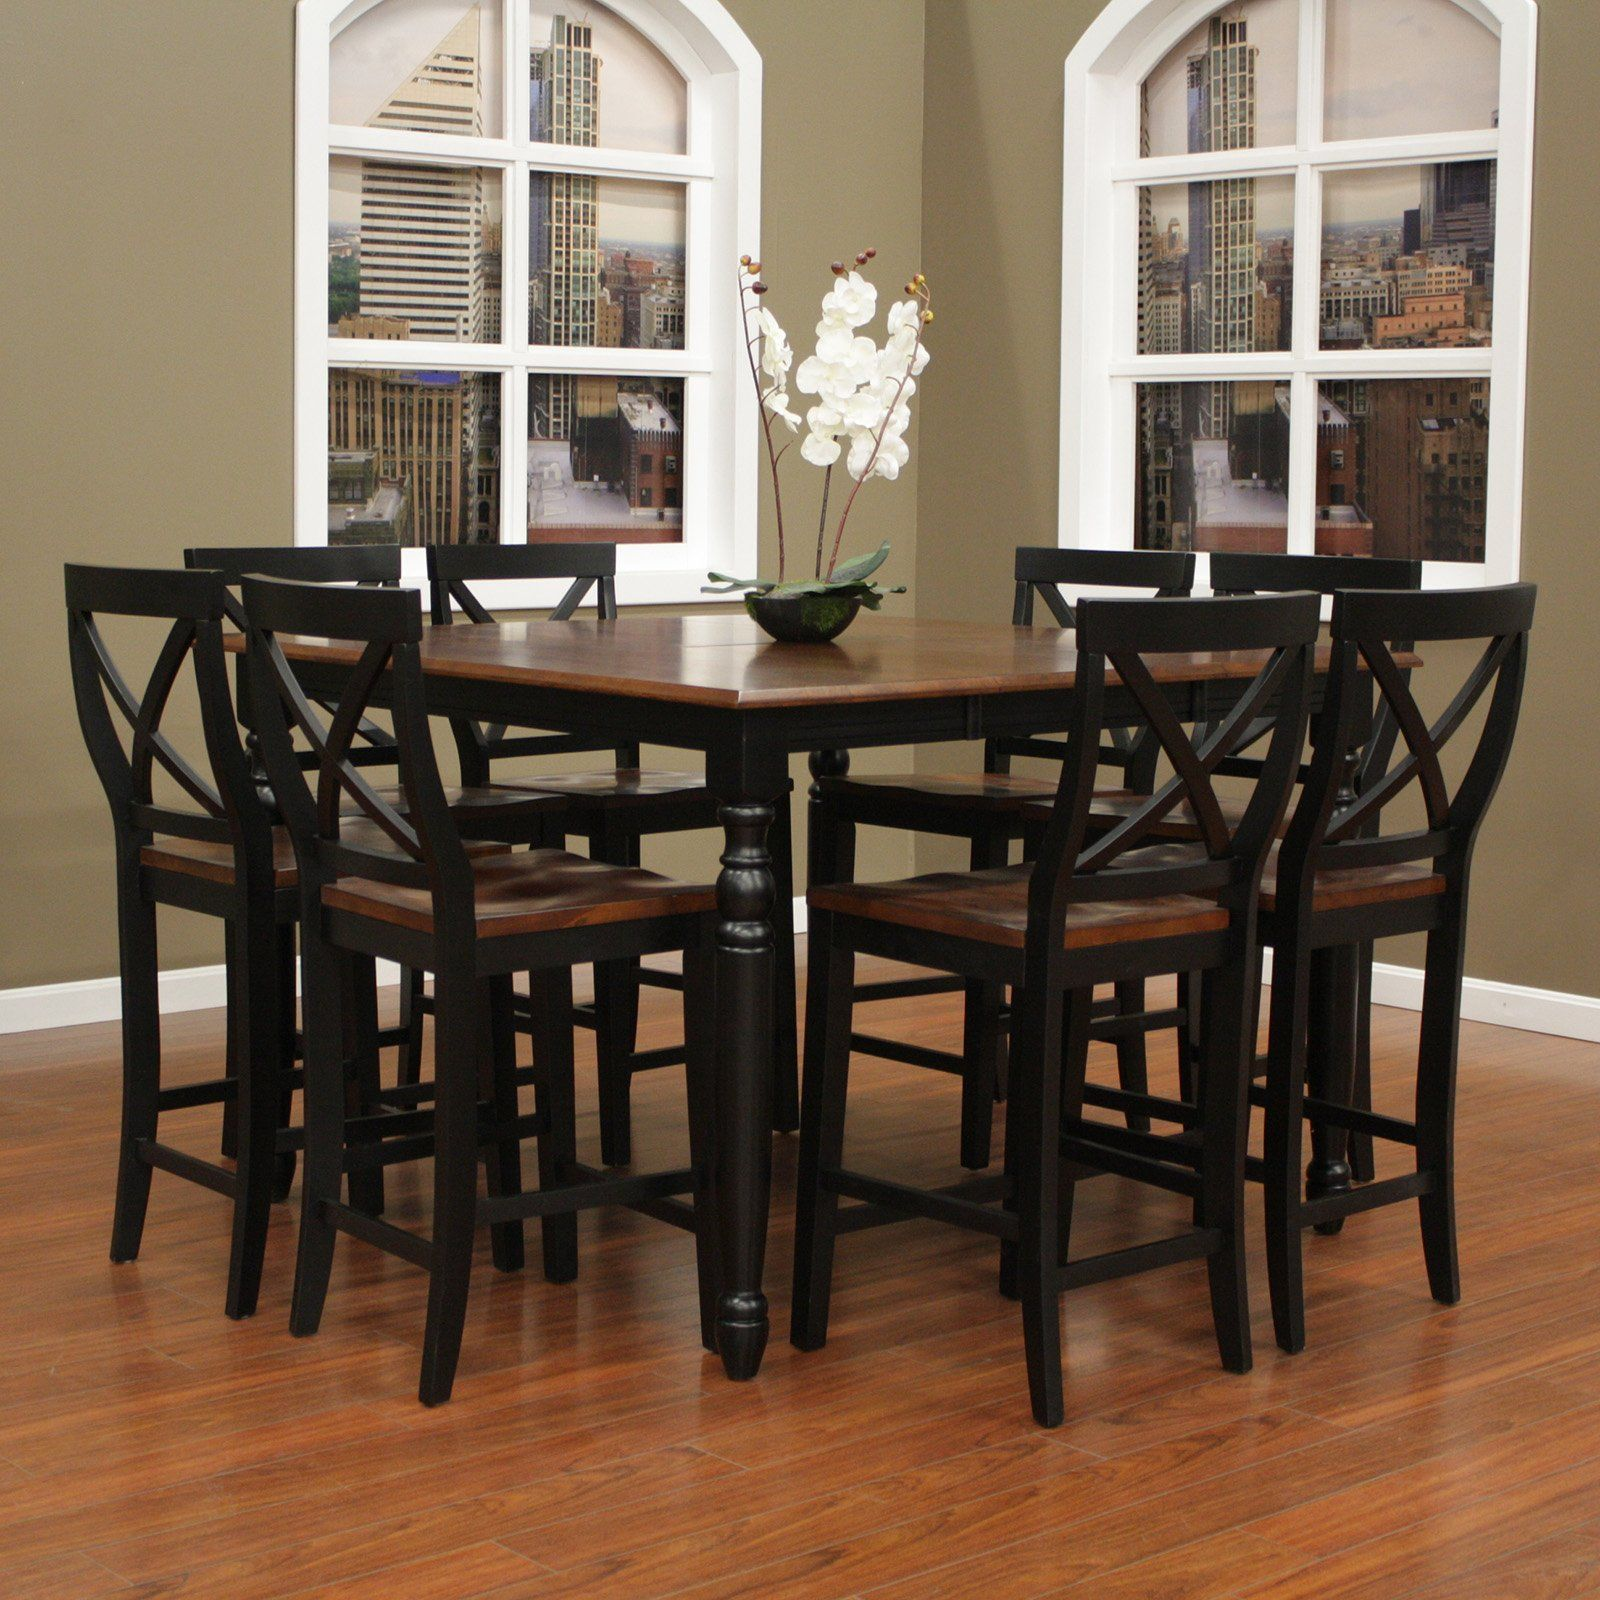 Furniture Projects · Have To Have It. AHB Berkshire 9 Piece Counter Height  Dining Set With Camden Stools